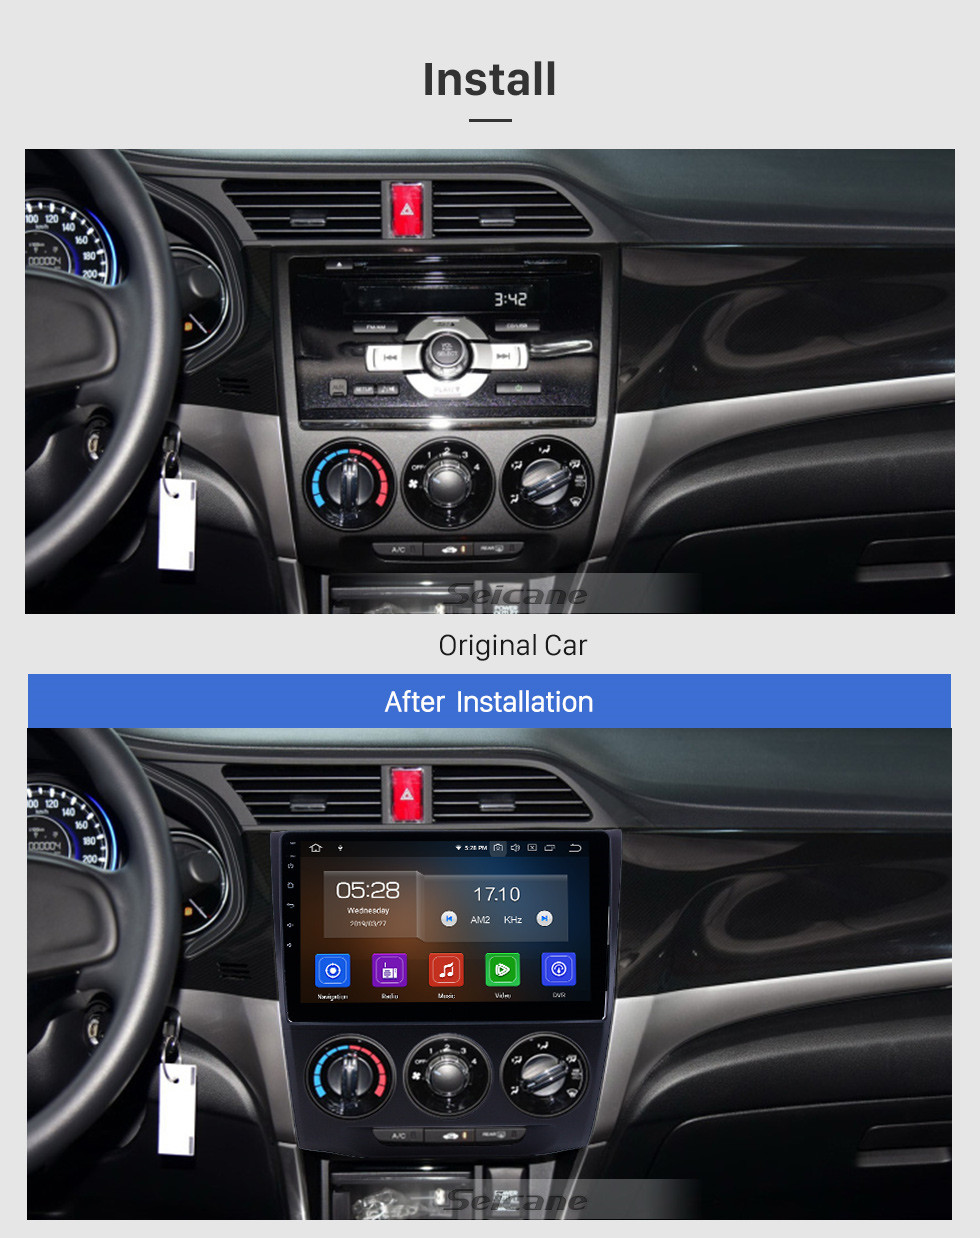 Seicane 10.1 inch Android 9.0 GPS Navigation Radio for 2013-2019 Honda Crider Manual A/C with HD Touchscreen Carplay Bluetooth support 1080P